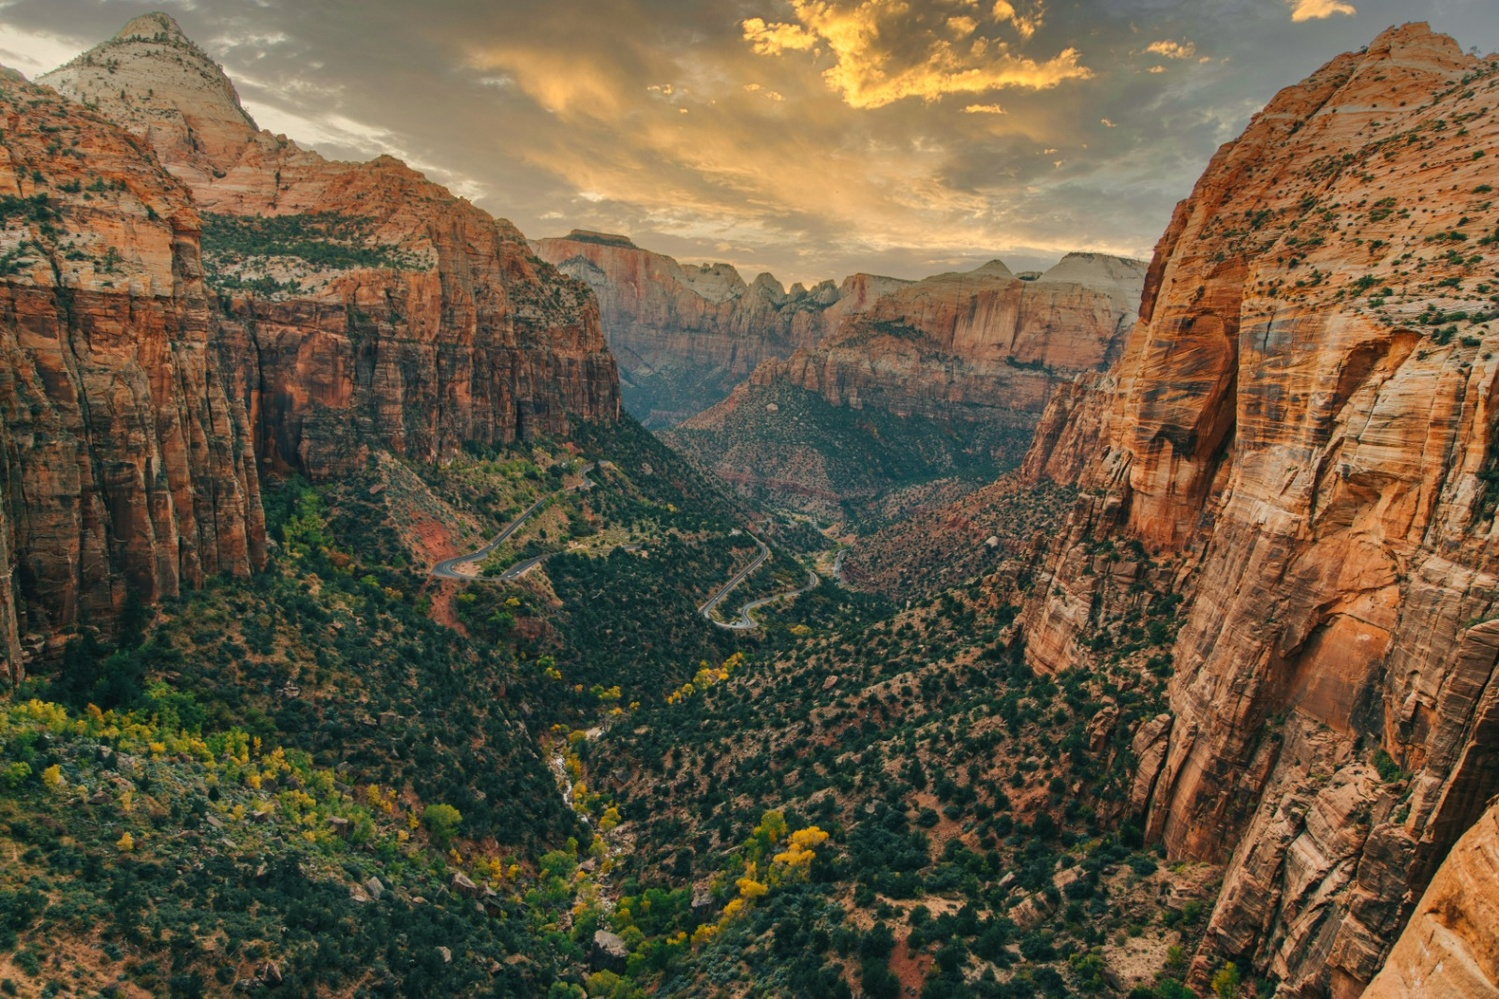 Observation Point in Zion National Park by Florian Mauduit